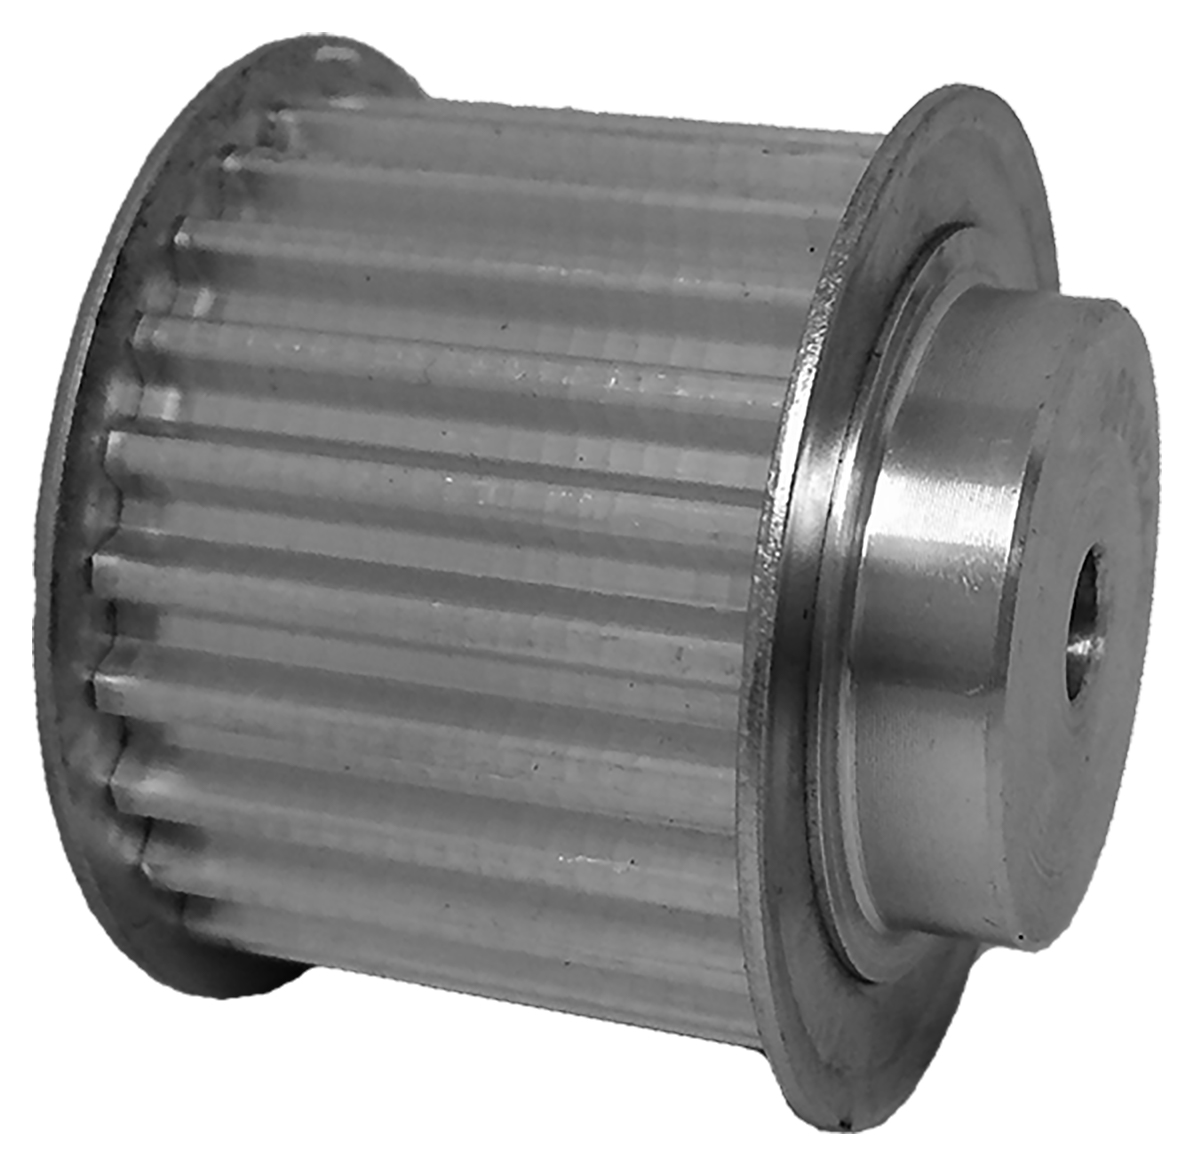 36T5/24-2 - Aluminum Metric Pulleys